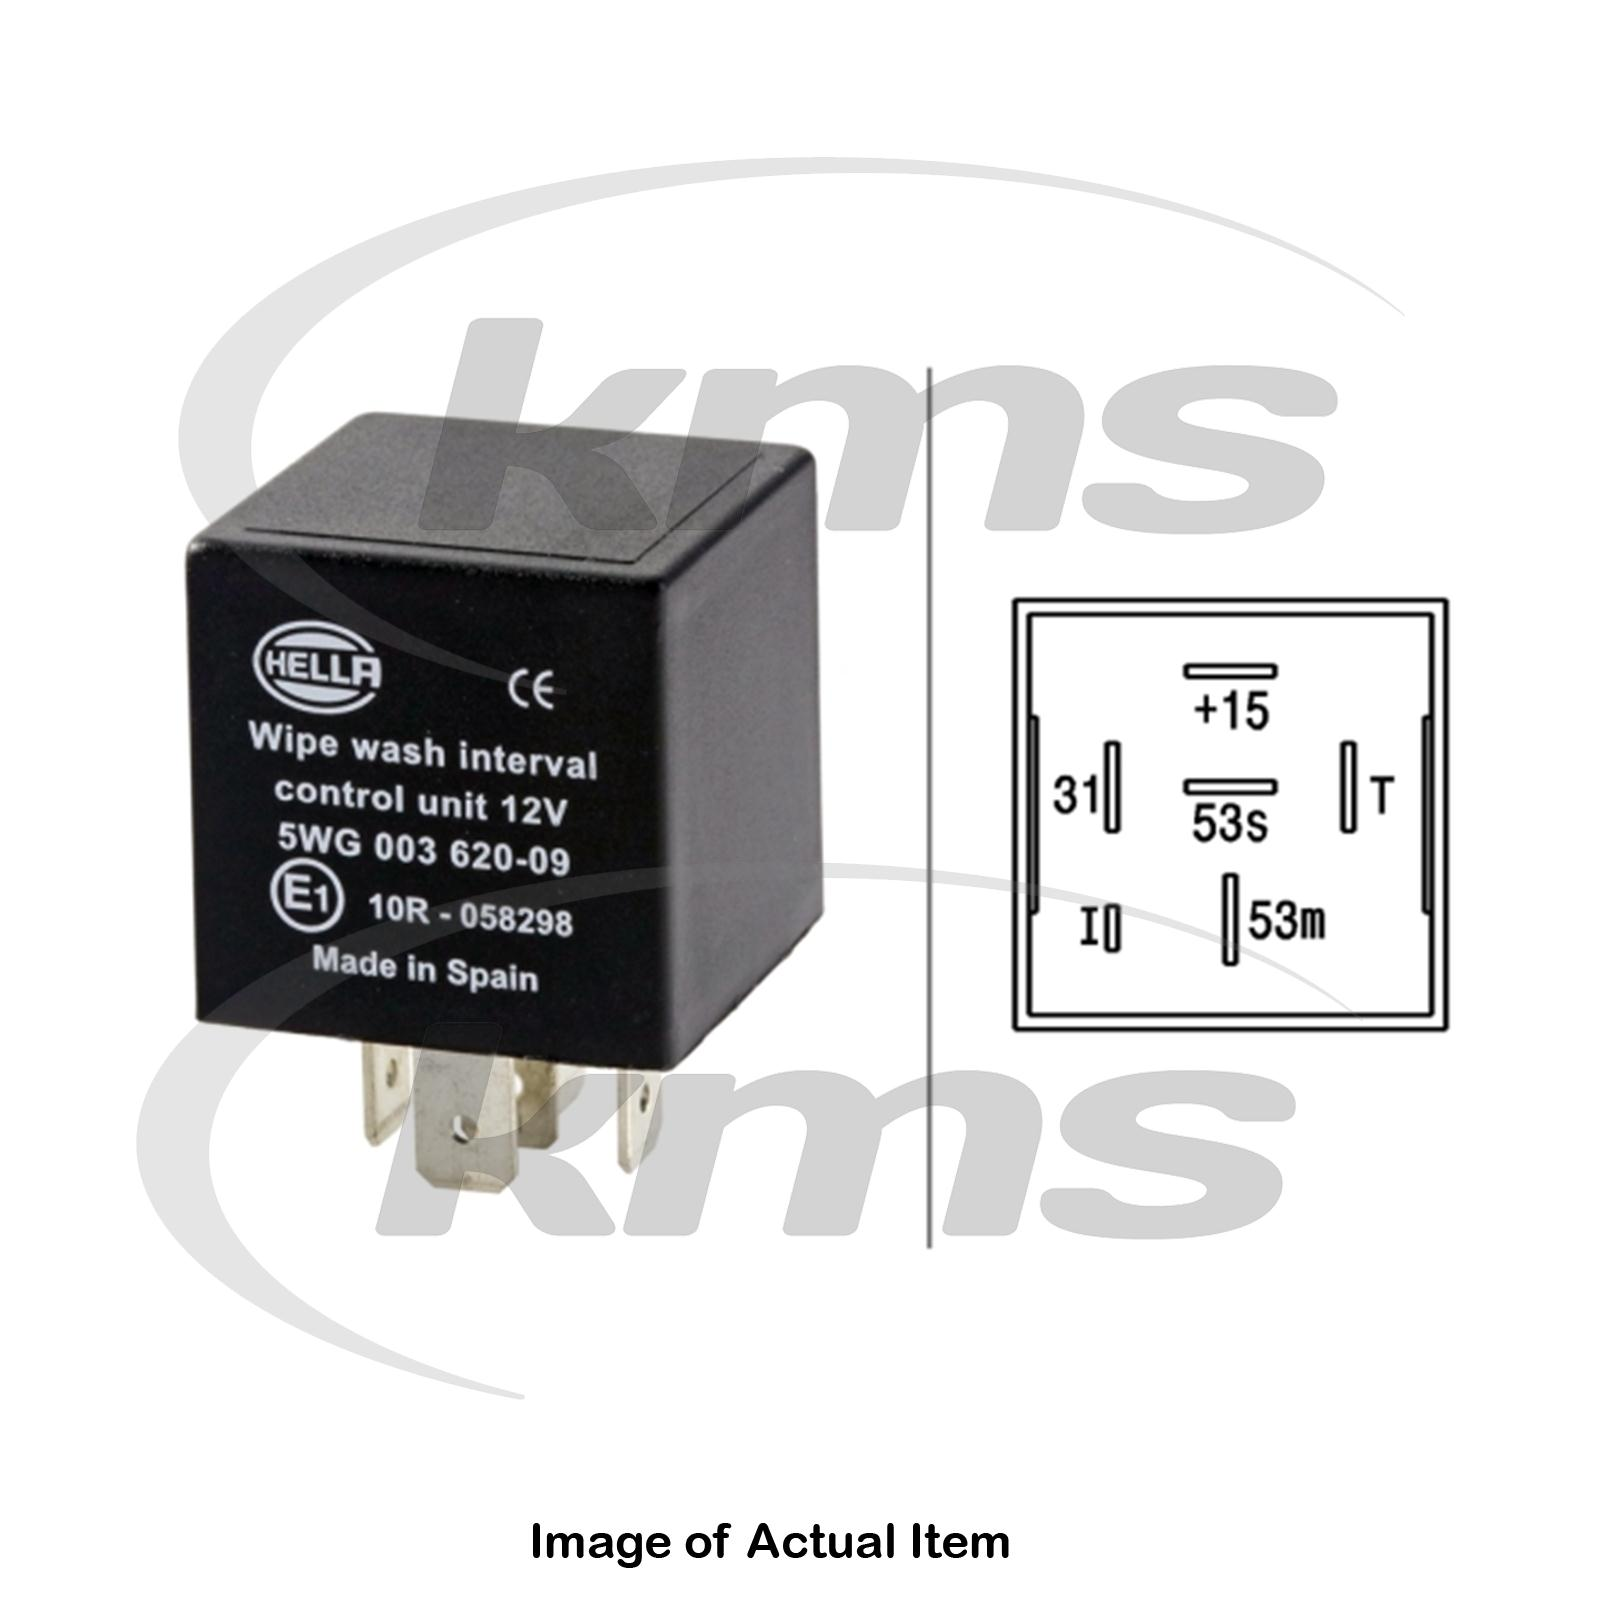 New Genuine Hella Wipe Wash Interval Relay 5wg 003 620 097 Mk4 Top Mosquito Repellent Circuit Schematic Sentinel German Quality